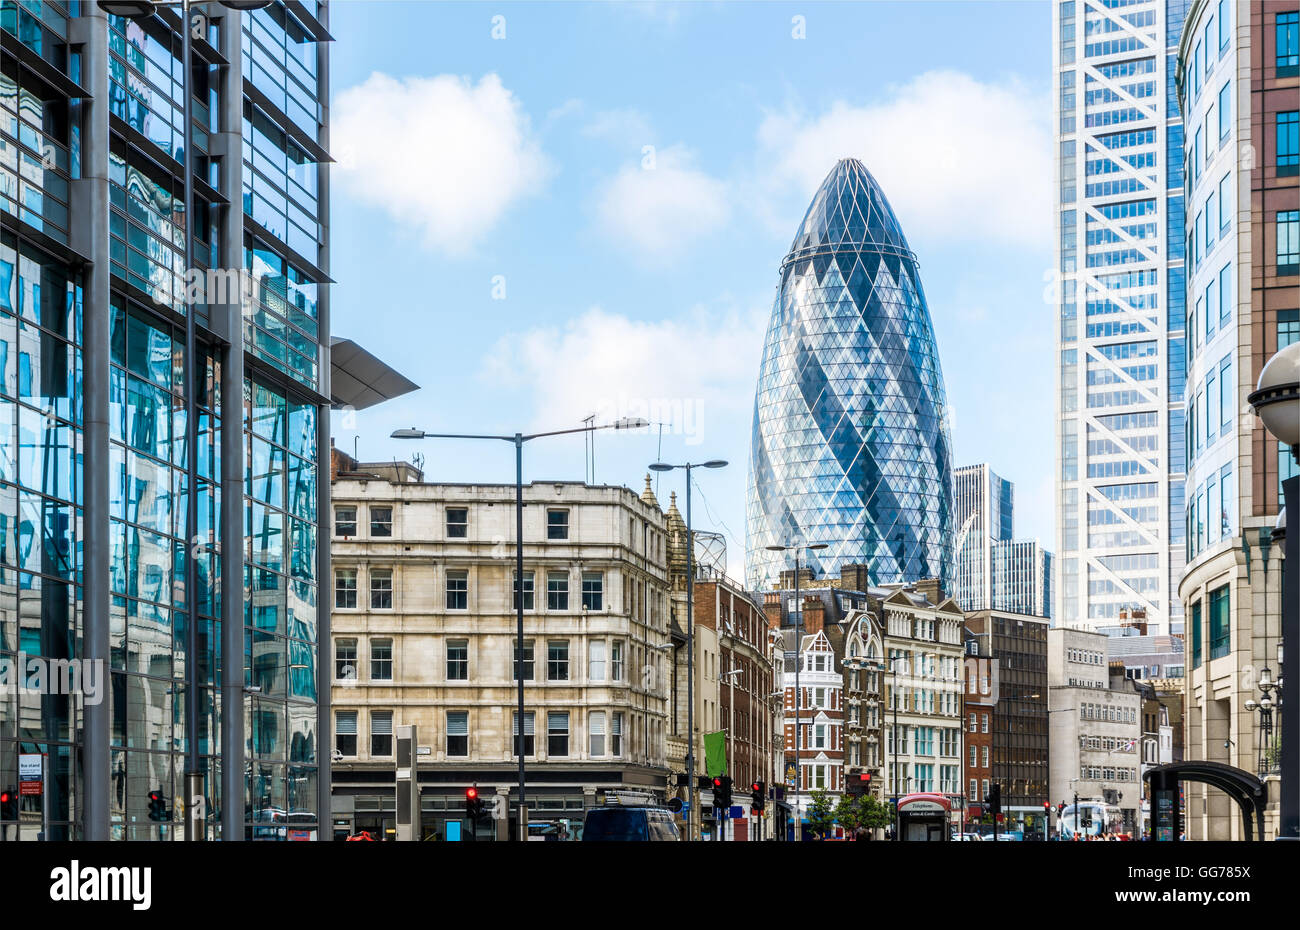 City View of London around Liverpool Street station - Stock Image